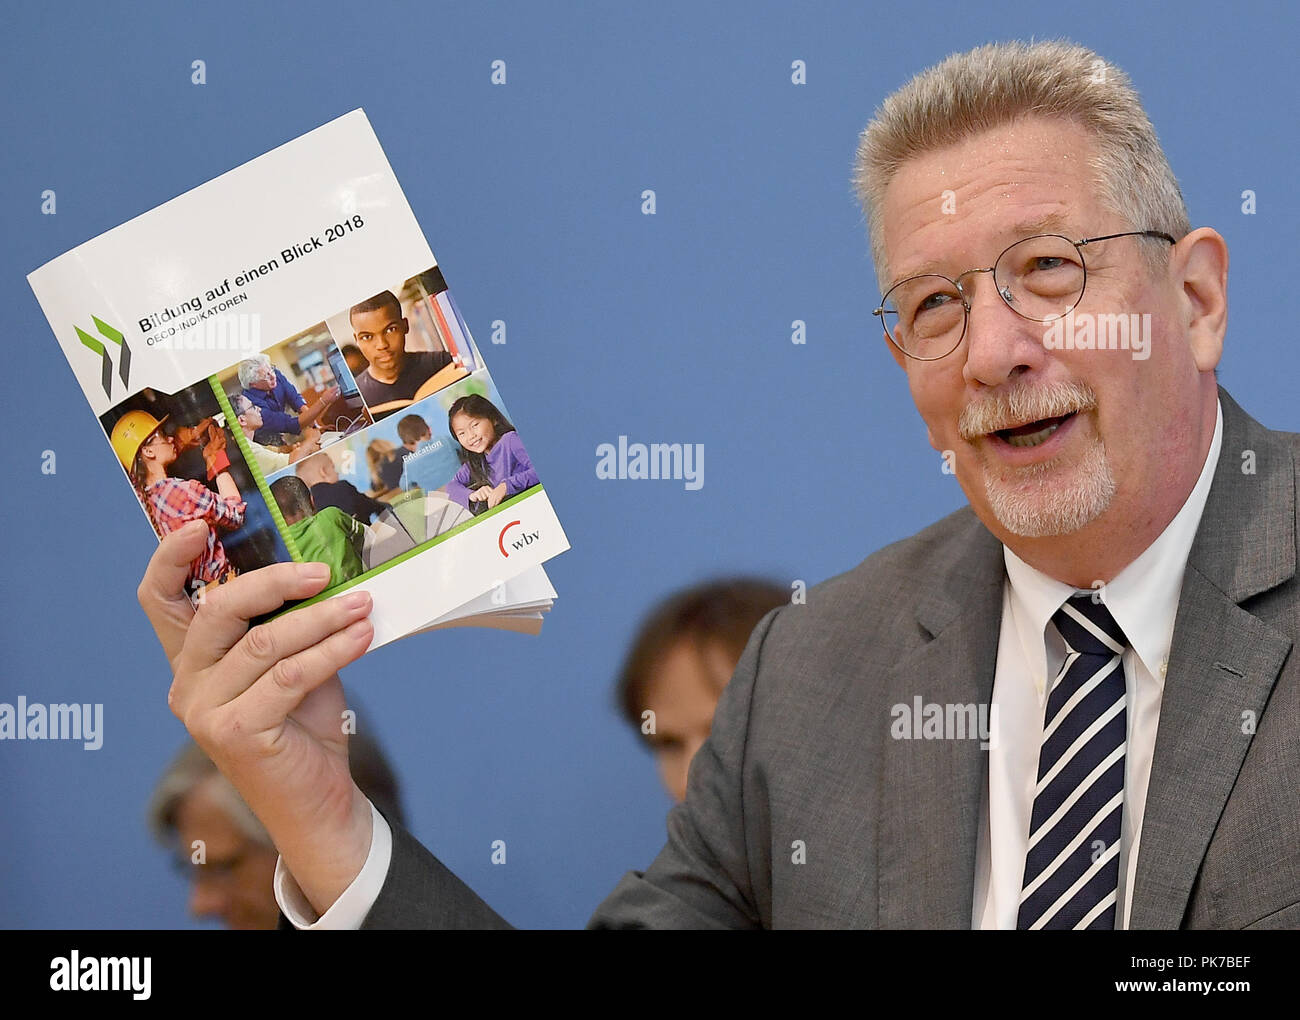 11 September 2018, Berlin: Heino von Meyer, Head of the OECD Berlin Centre speaks at the presentation of the OECD report 'Education at a Glance 2018'. OECD is the abbreviation for the Organisation for Economic Cooperation and Development. Photo: Britta Pedersen/dpa-Zentralbild/dpa - Stock Image